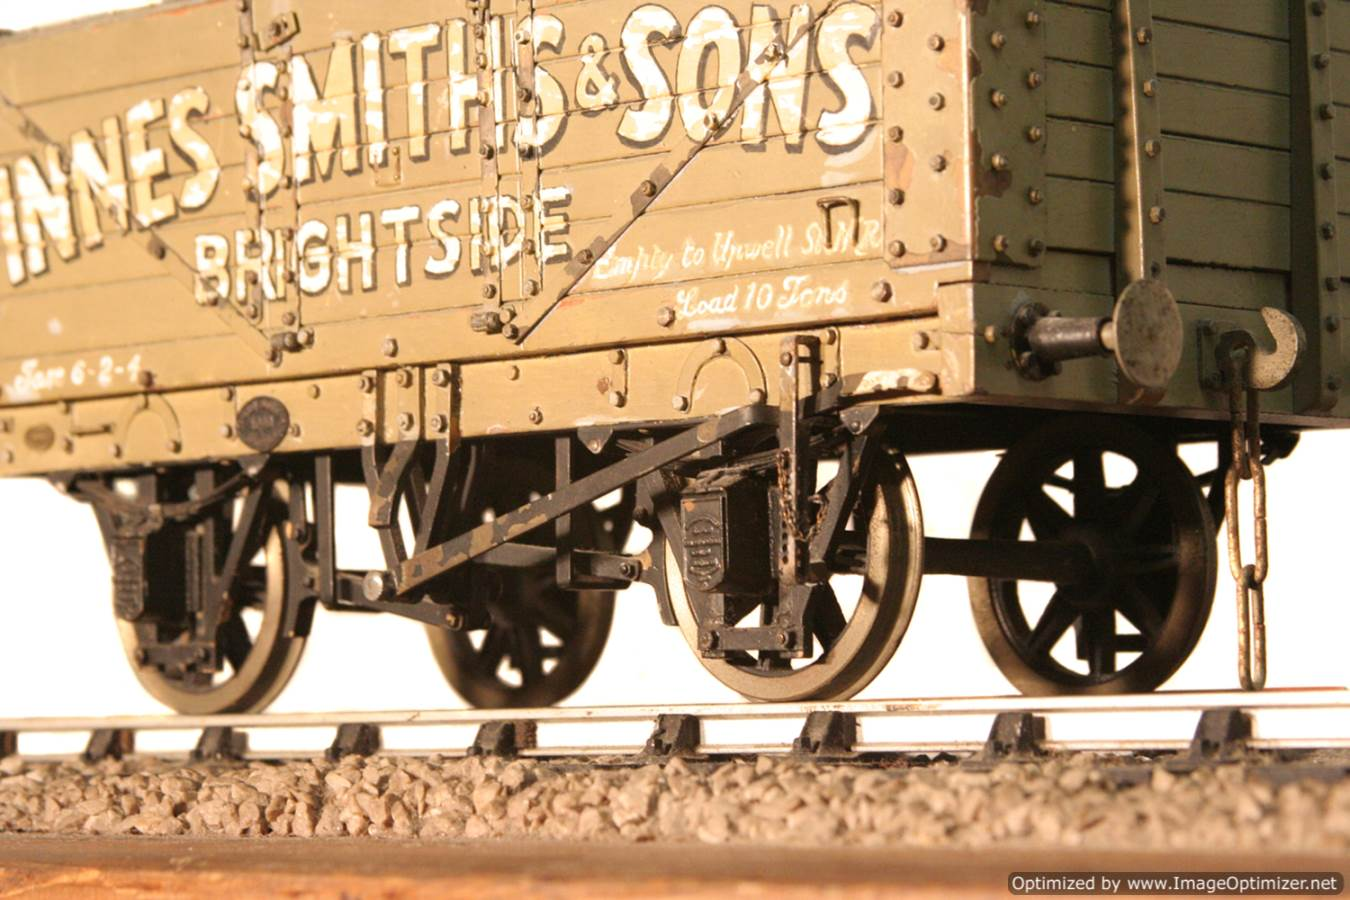 test Live steam coal wagon for sale 10 Optimized